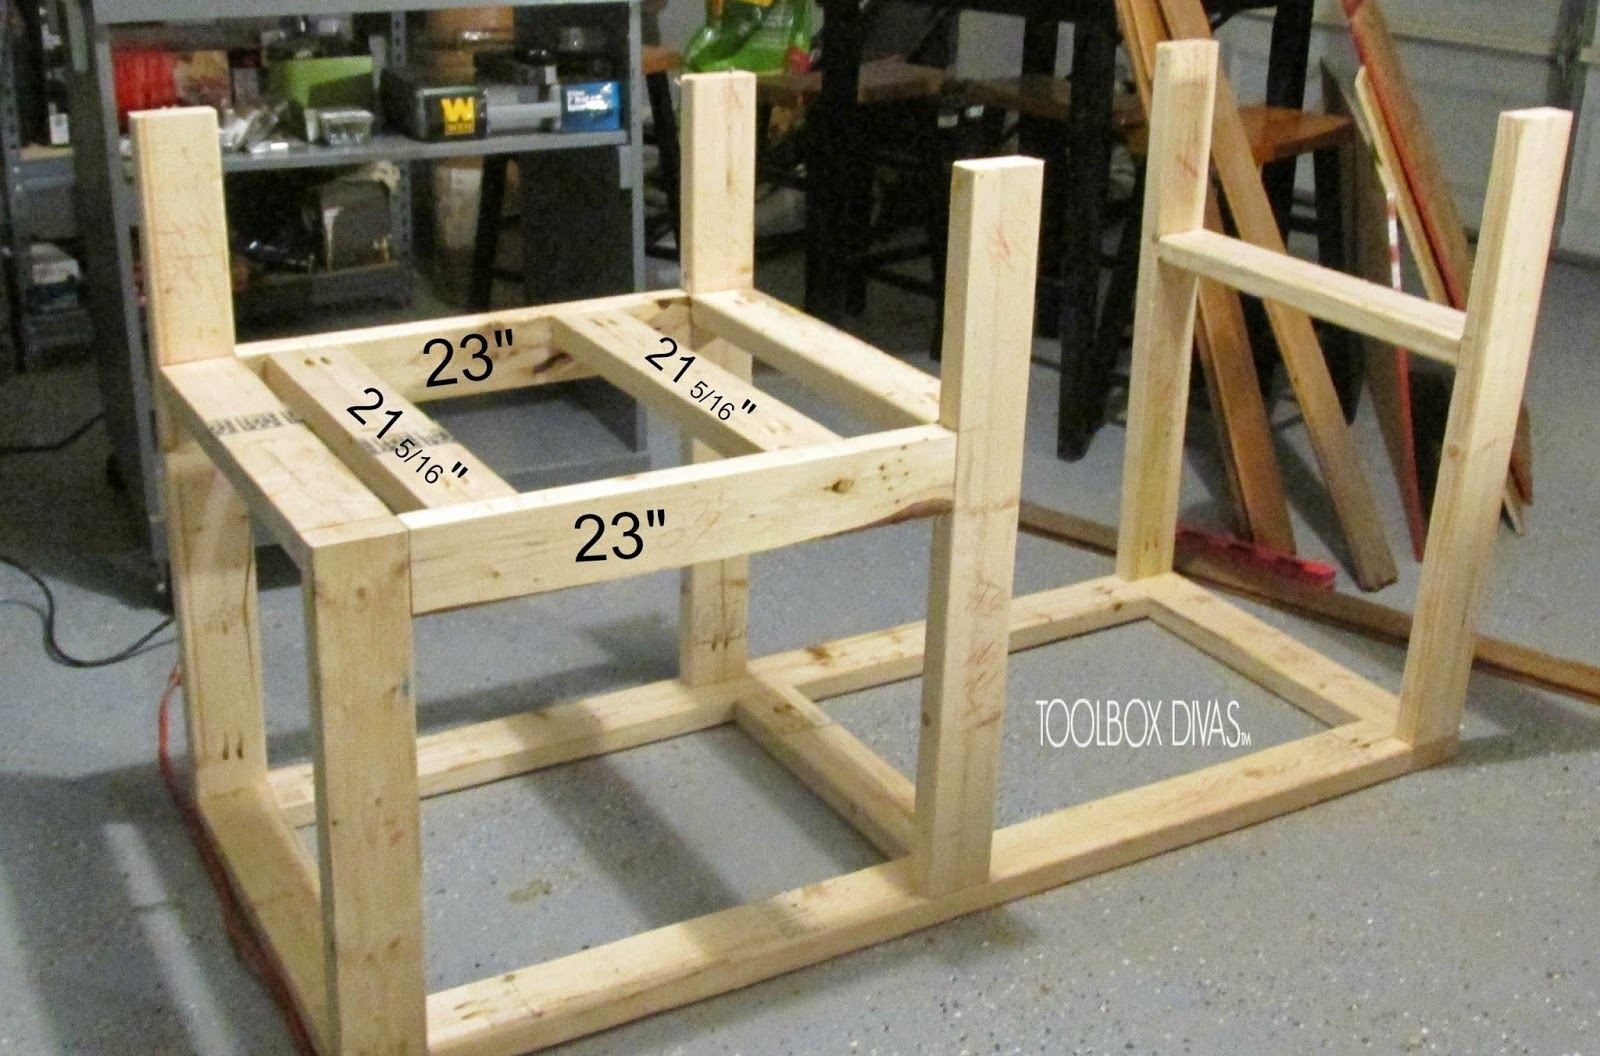 Best Kitchen Gallery: Table Saw Workbench With Wood Storage of Base Table Saw Cabinet Plan on rachelxblog.com